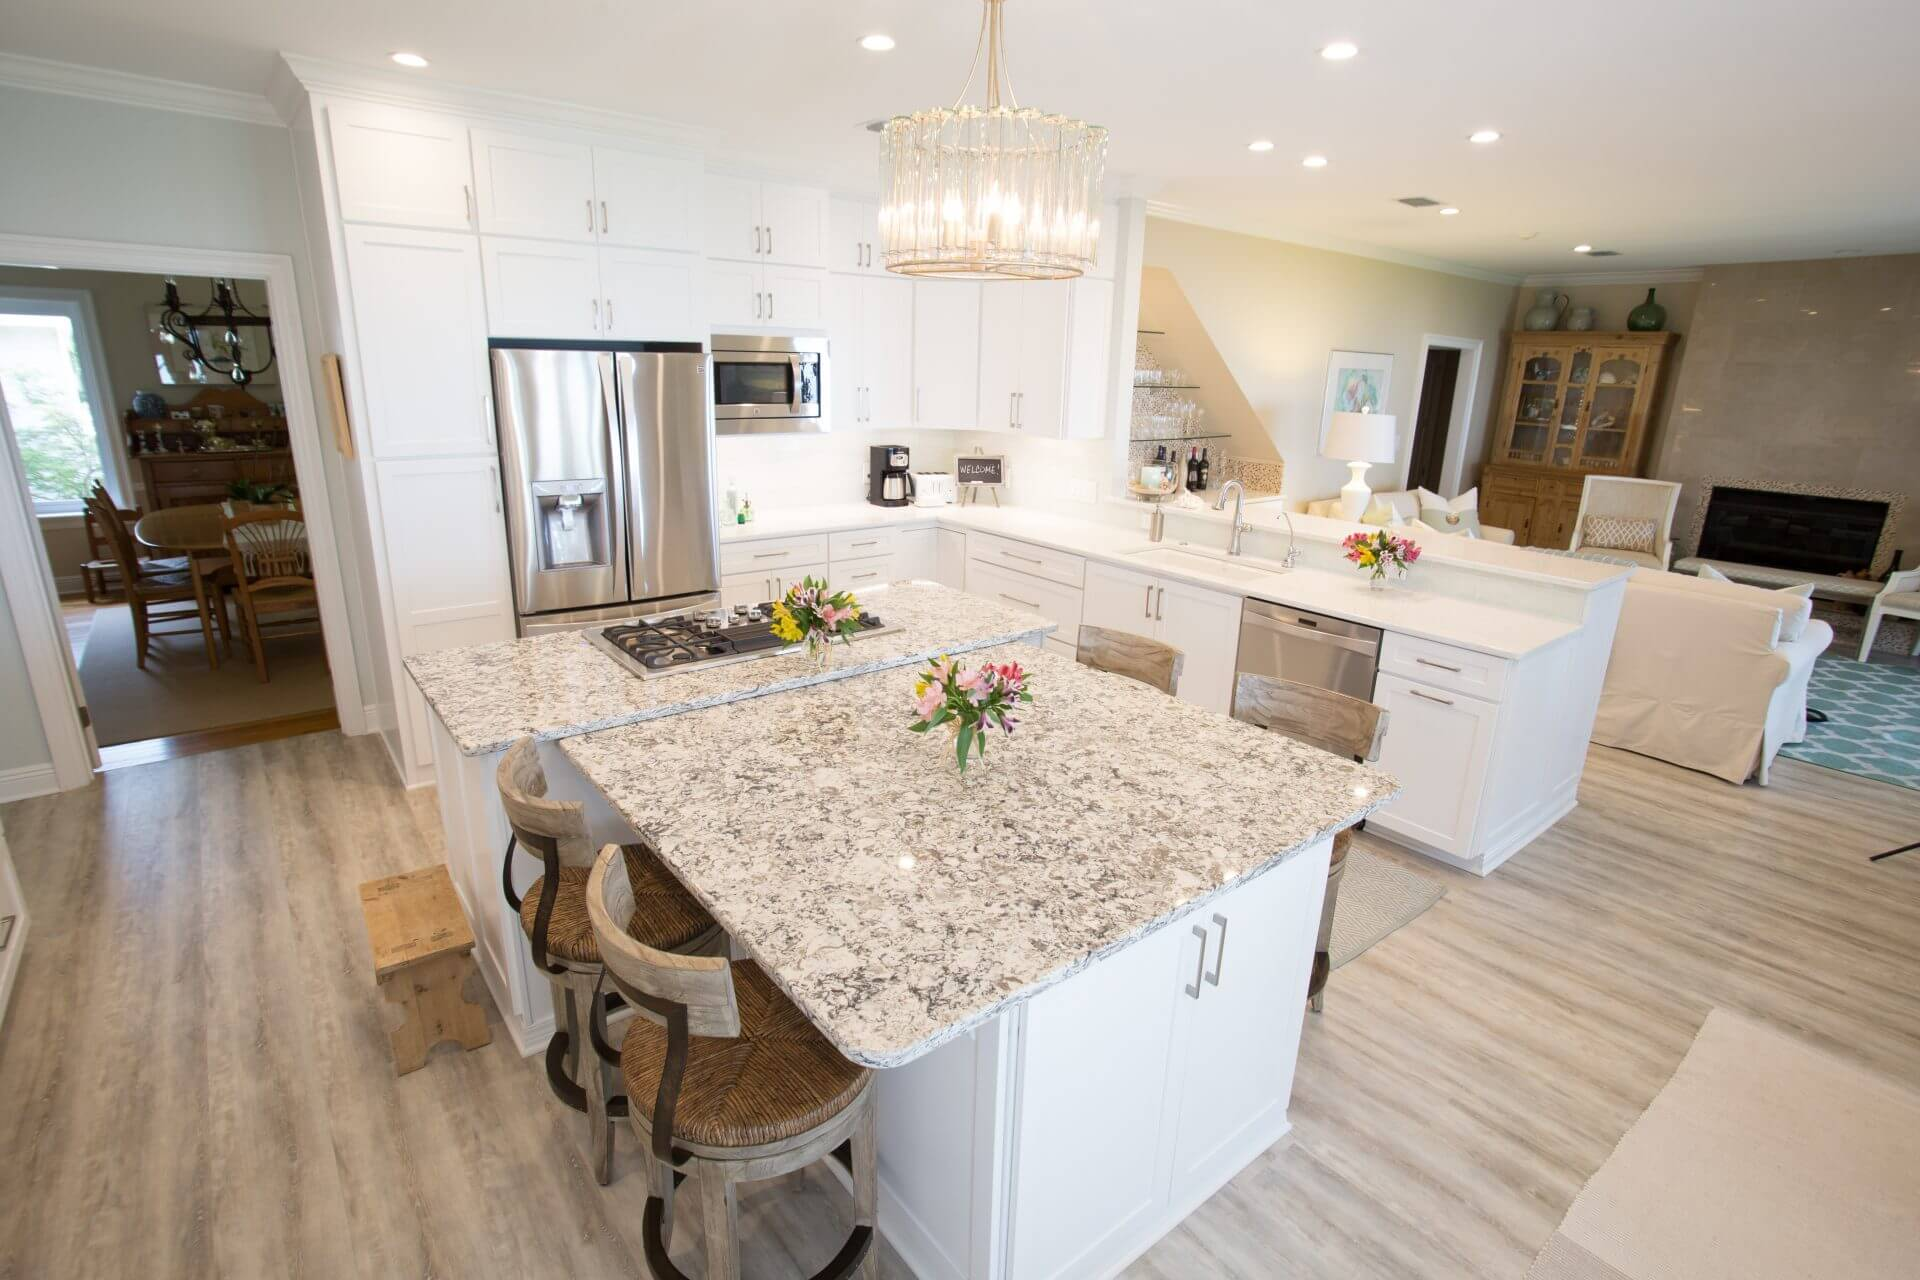 Open floor plan kitchen remodeled with white shaker cabinets.